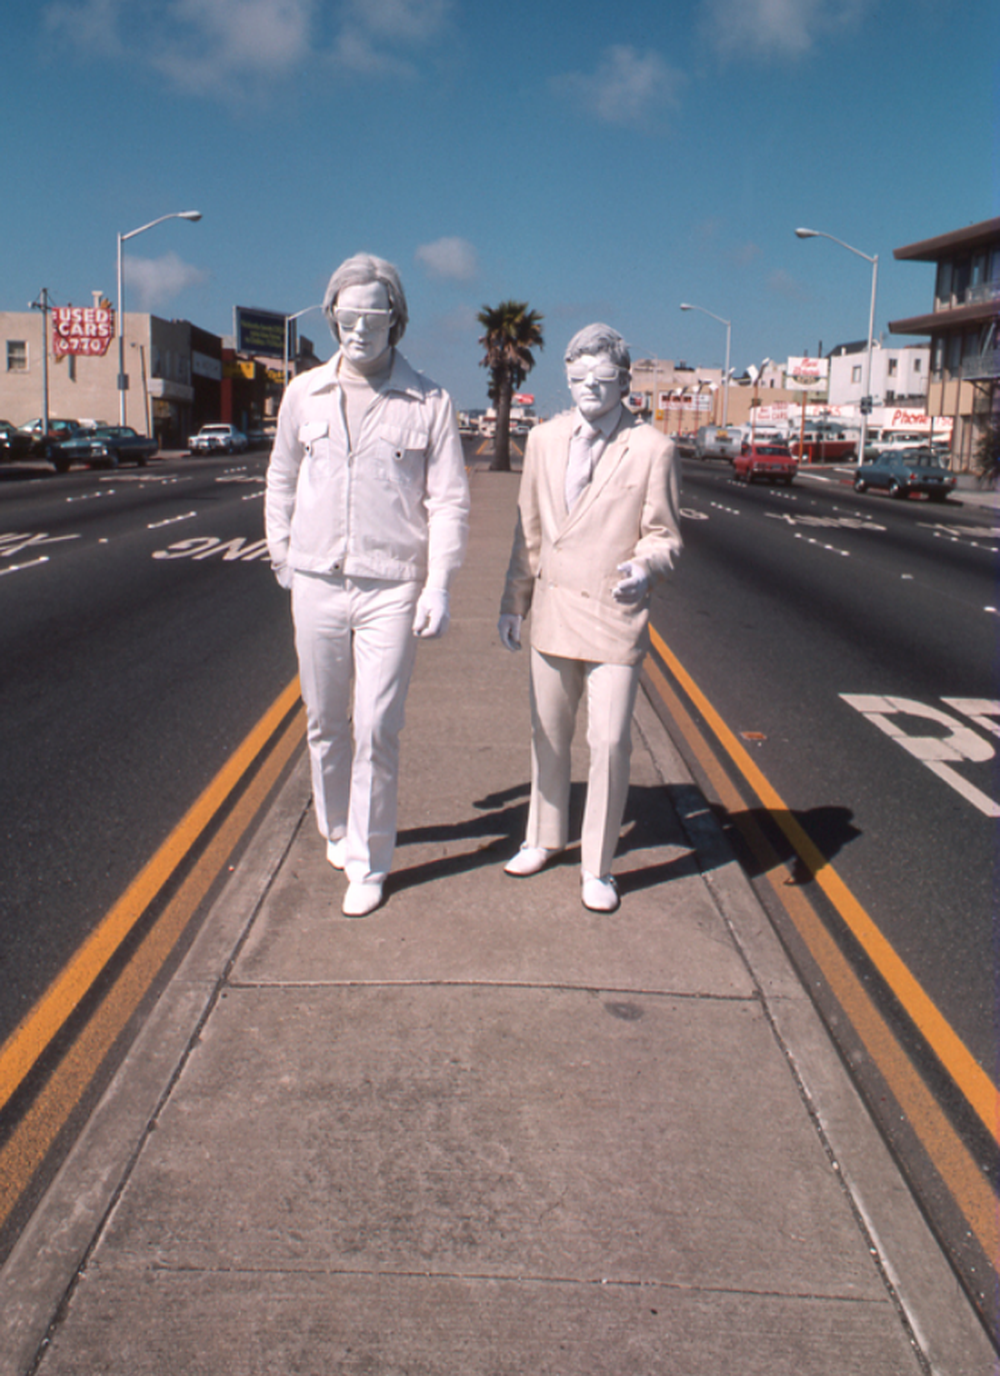 two men painted white wearing white clothing on the medium of a busy street